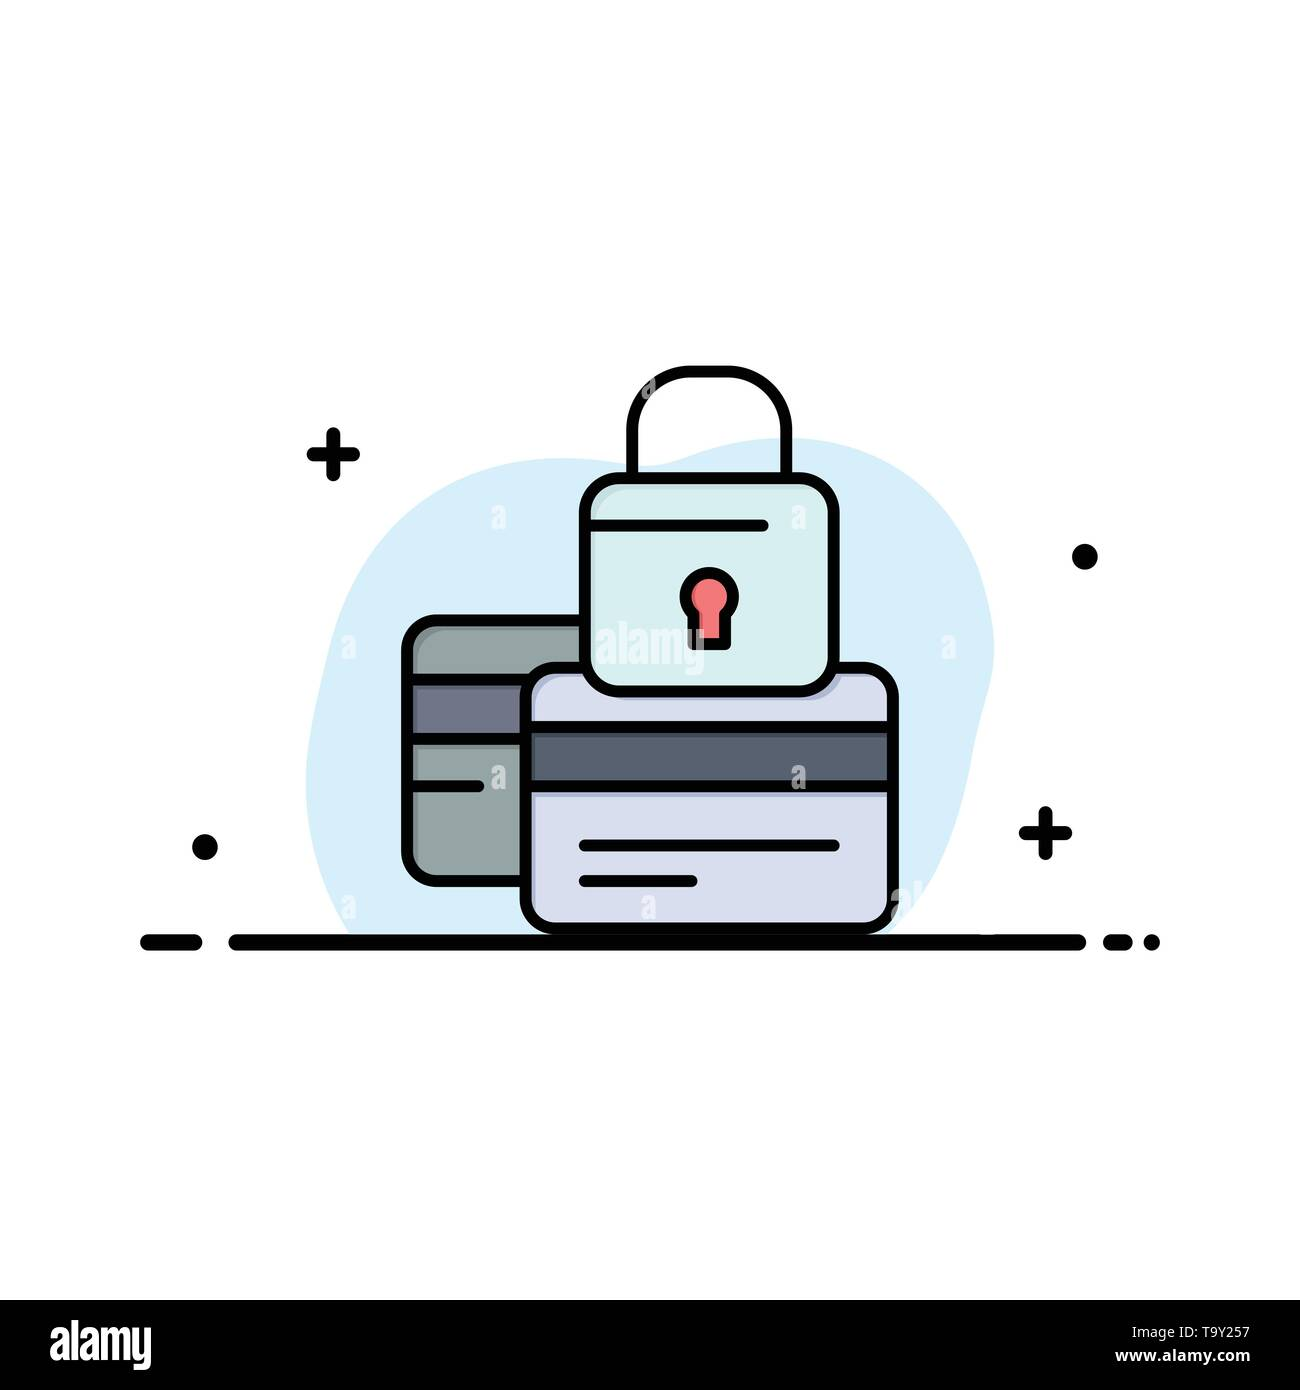 Banking, Card, Credit, Payment, Secure, Security Business Logo Template. Flat Color - Stock Image